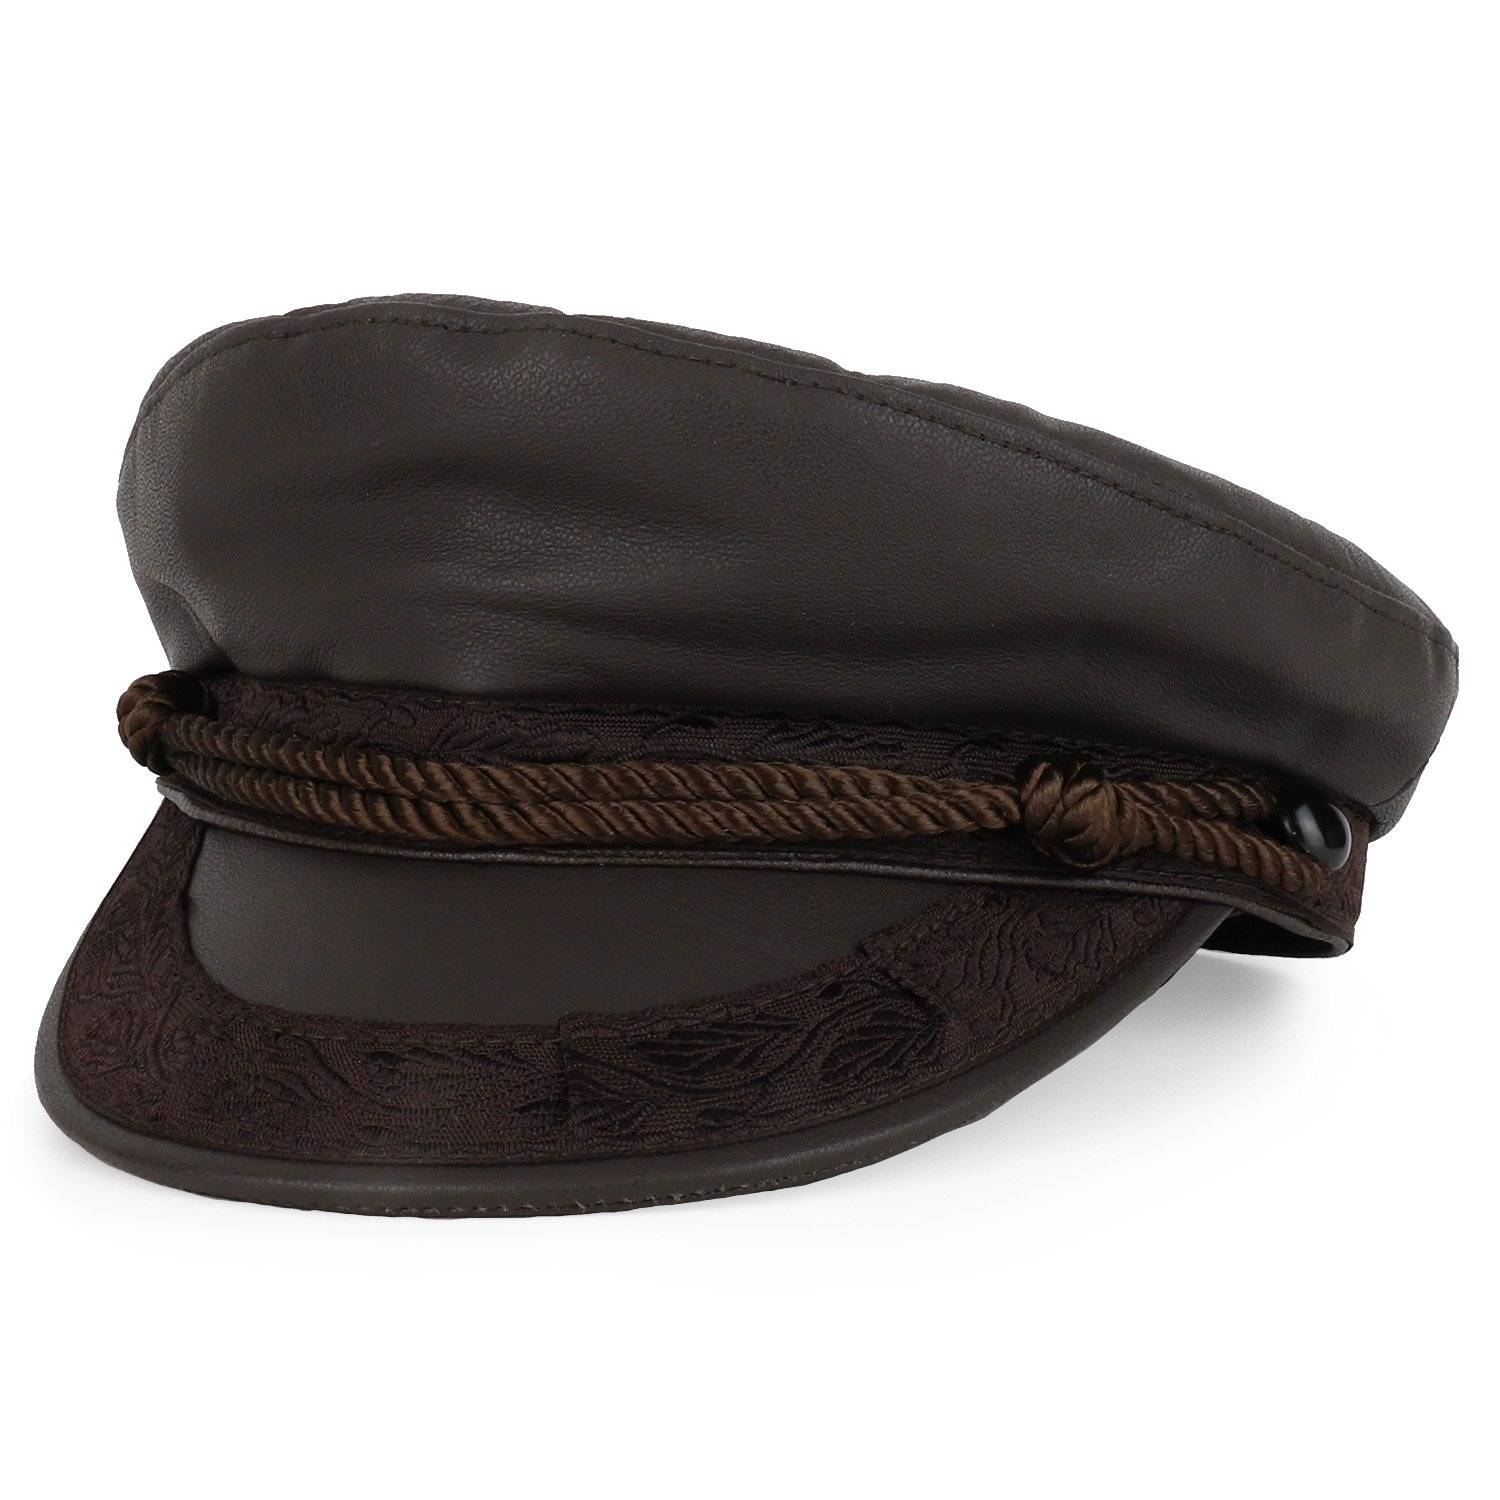 Armycrew Made In USA Genuine Leather Greek Style Rope Band newsboy Fisherman Hat - Brown - L